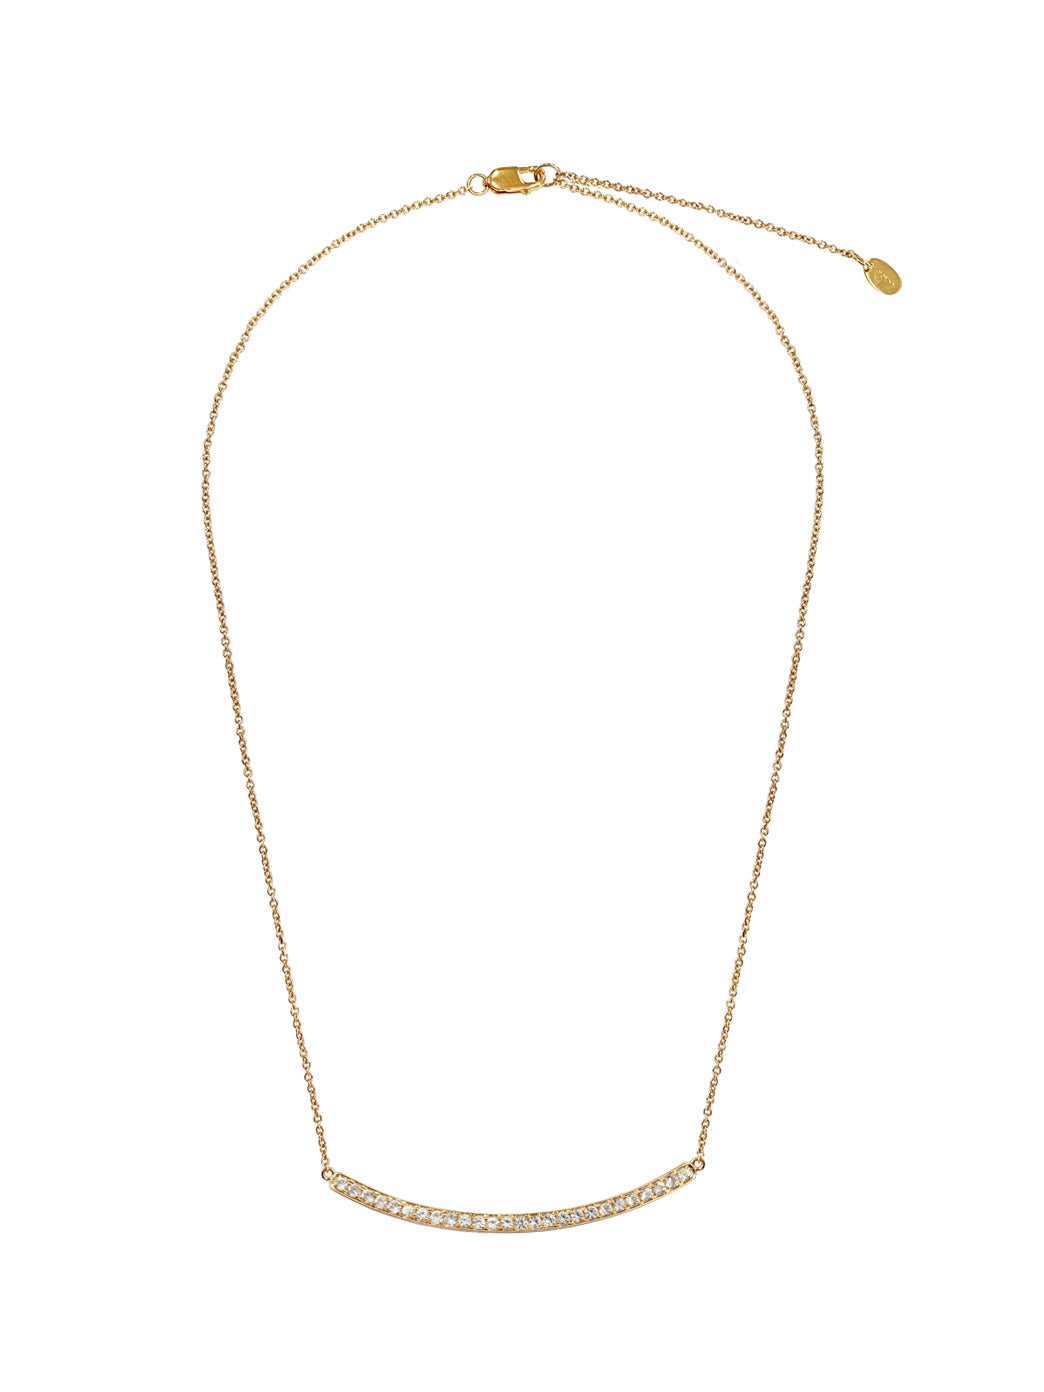 Fiorina Jewellery Gold Arc Necklace White Topaz